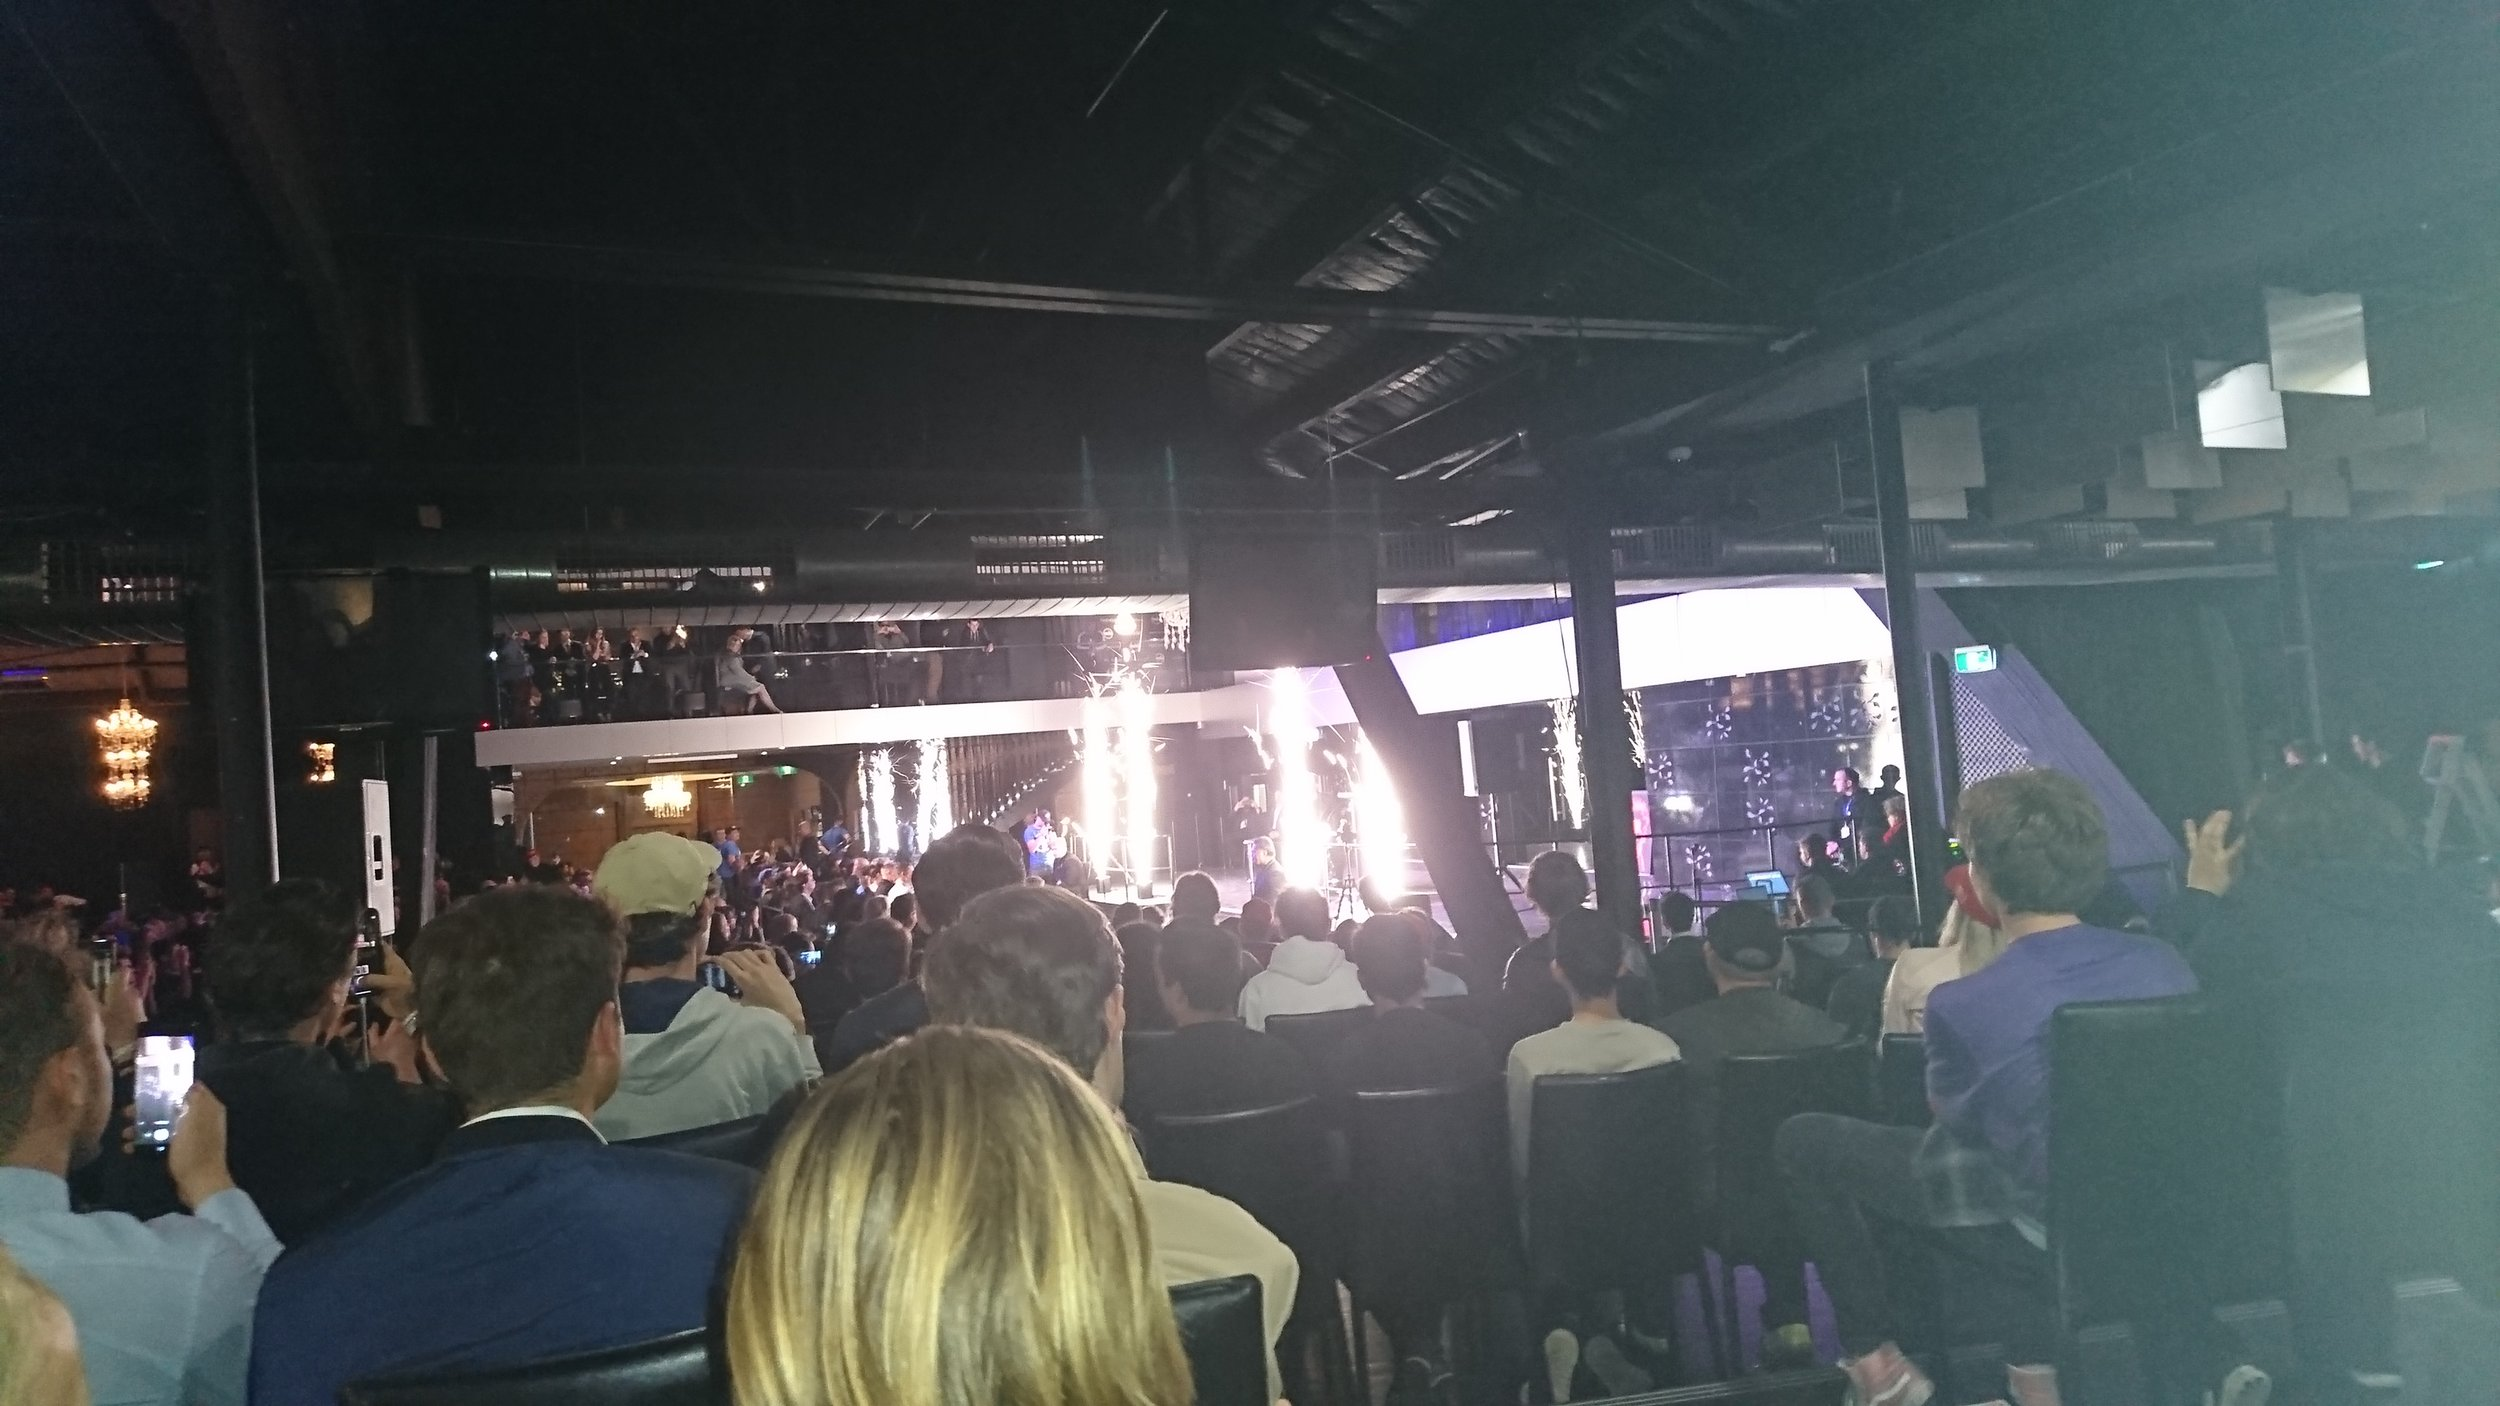 The view of Milo's grand entrance from my shitty seats.